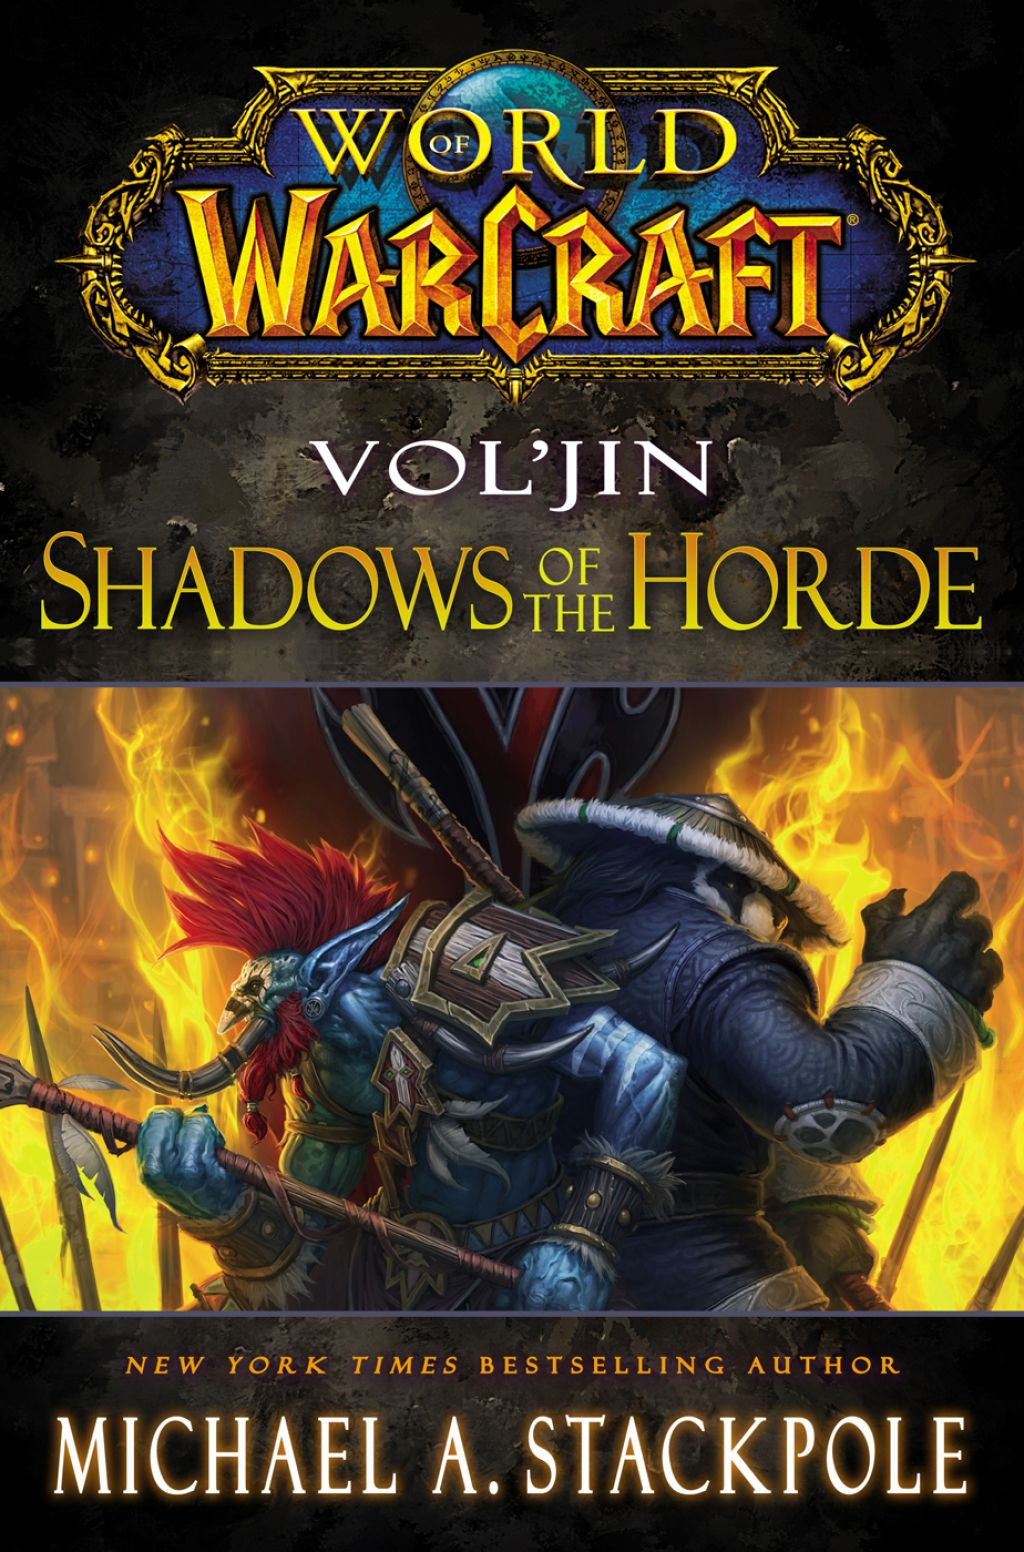 World Of Warcraft Vol Jin Shadows Of The Horde Ebook